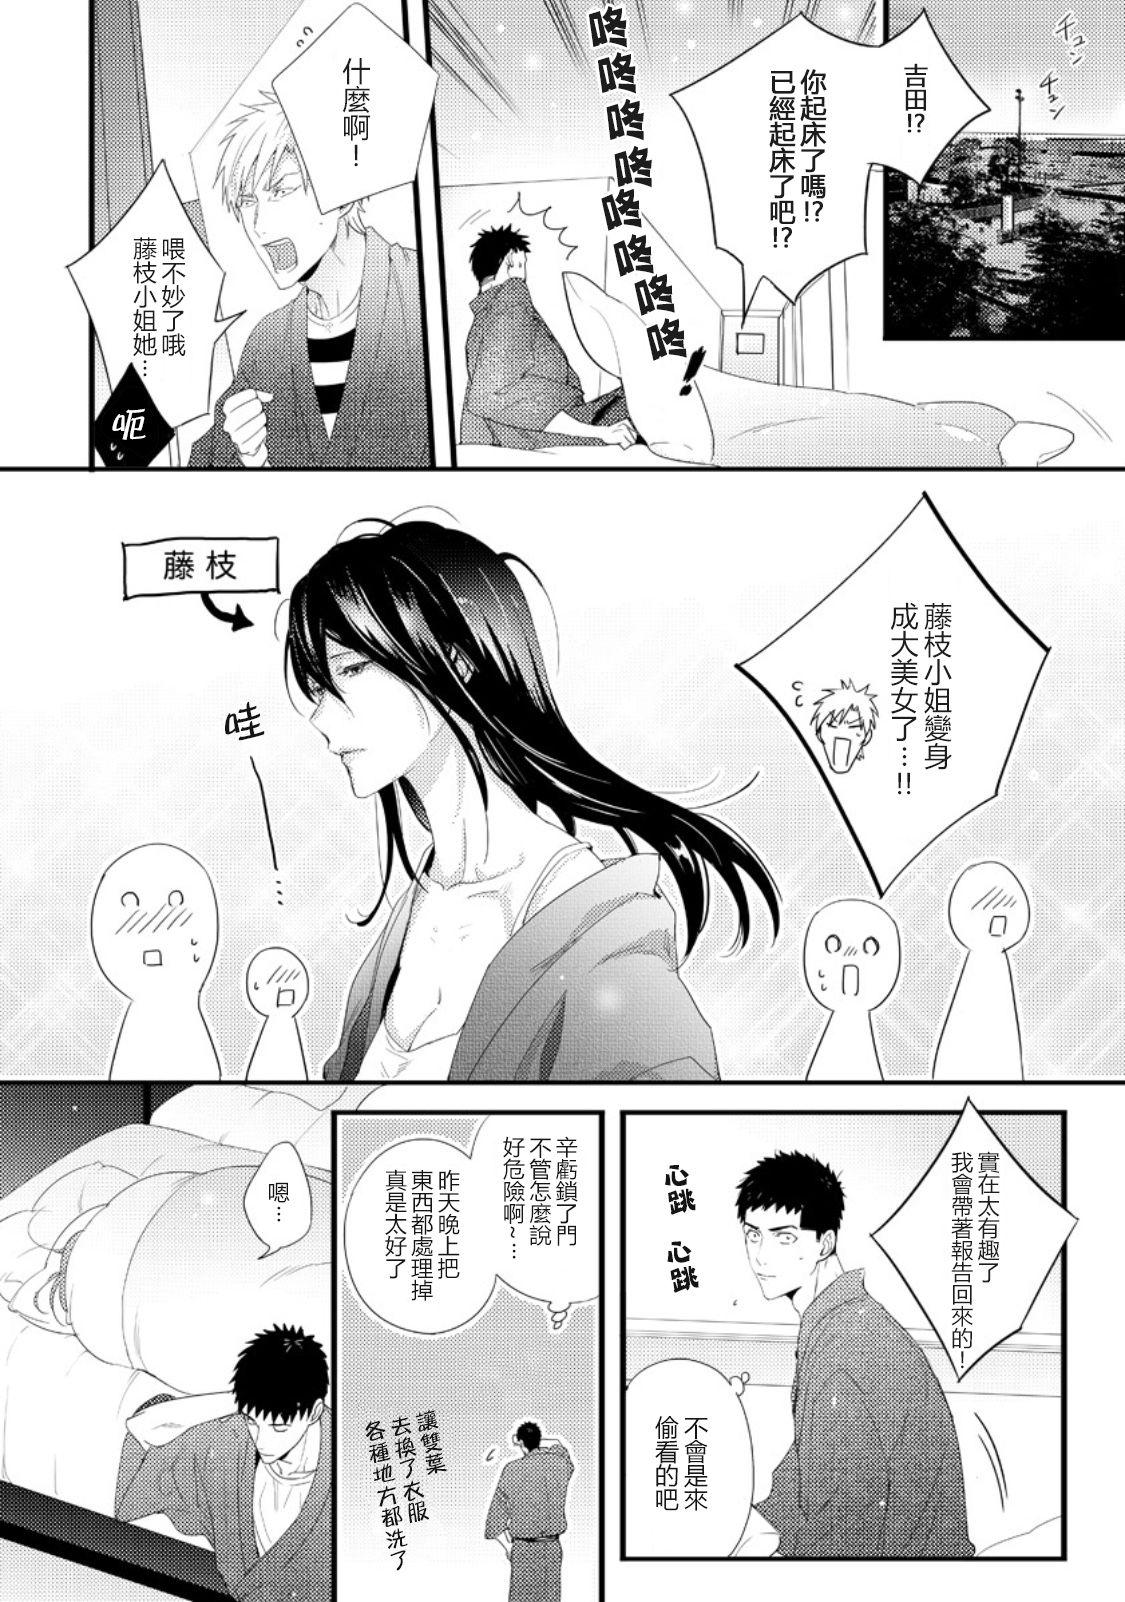 Please Let Me Hold You Futaba-San! Ch.1 22